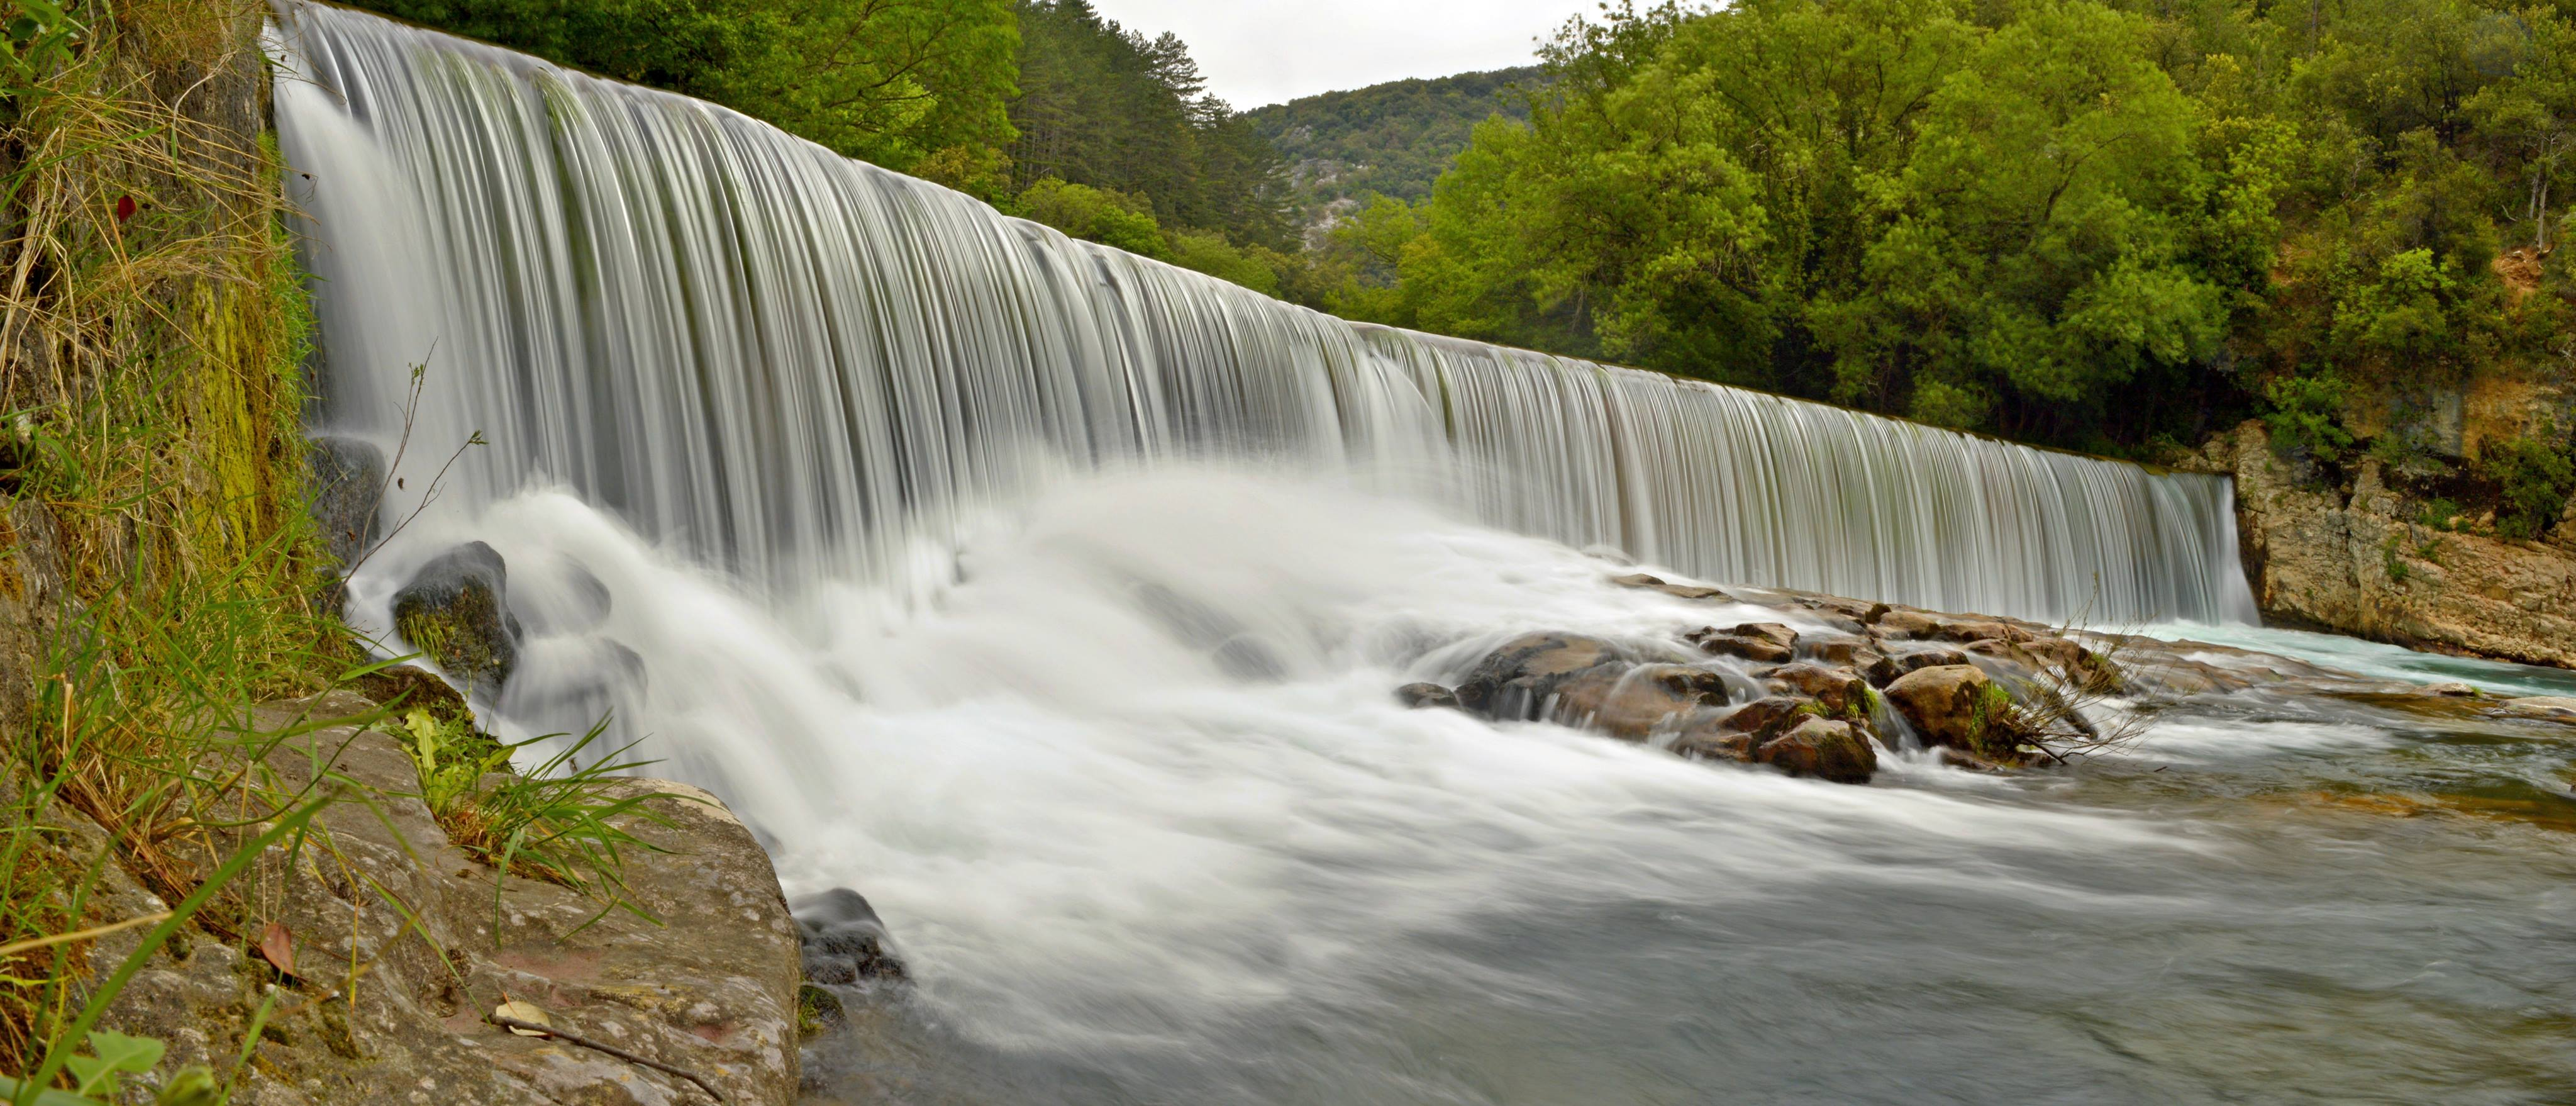 Cevennes river by vttiste